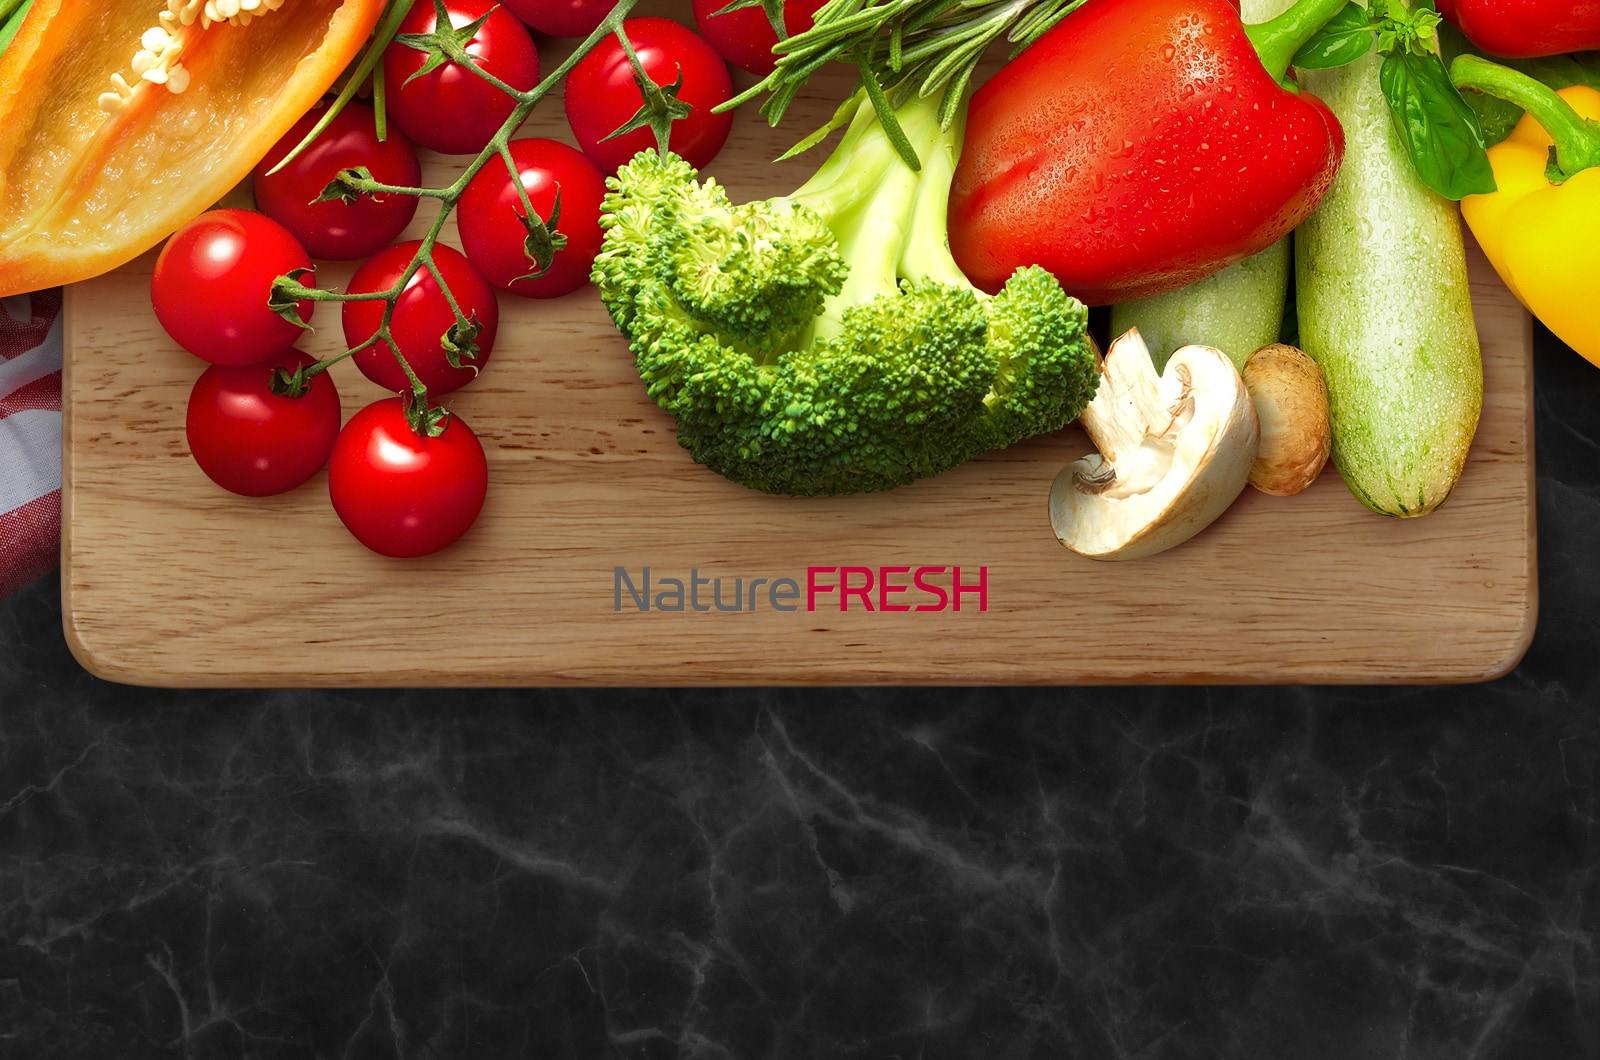 2-Global_Pollux_2016_Feature_02_NatureFRESH_D